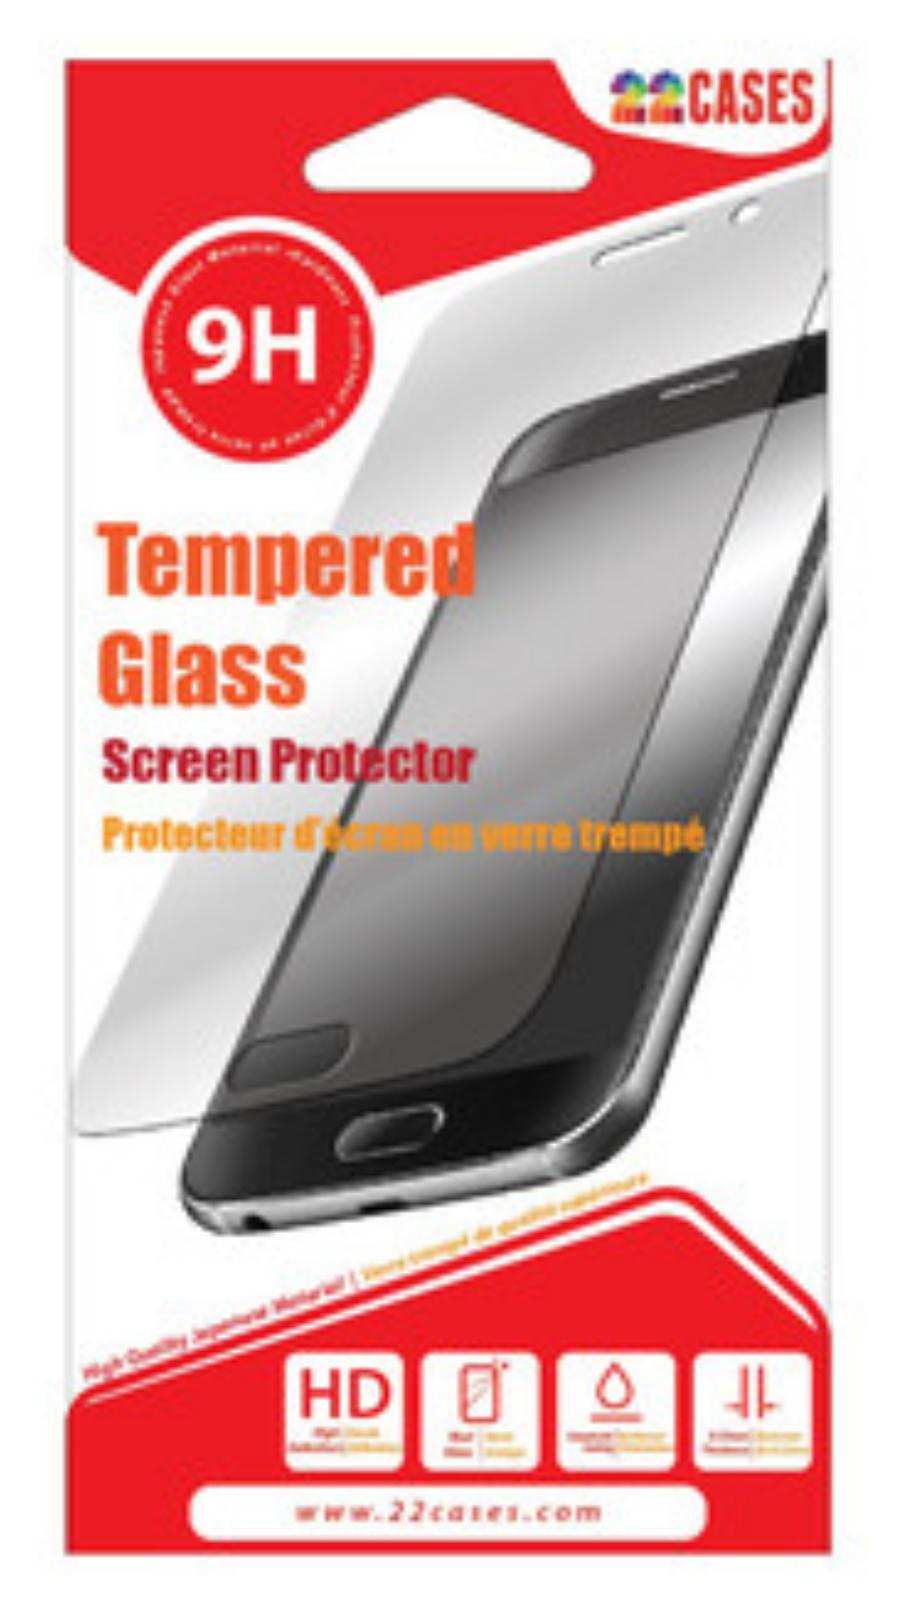 22 CASES GLASS SCREEN PRO